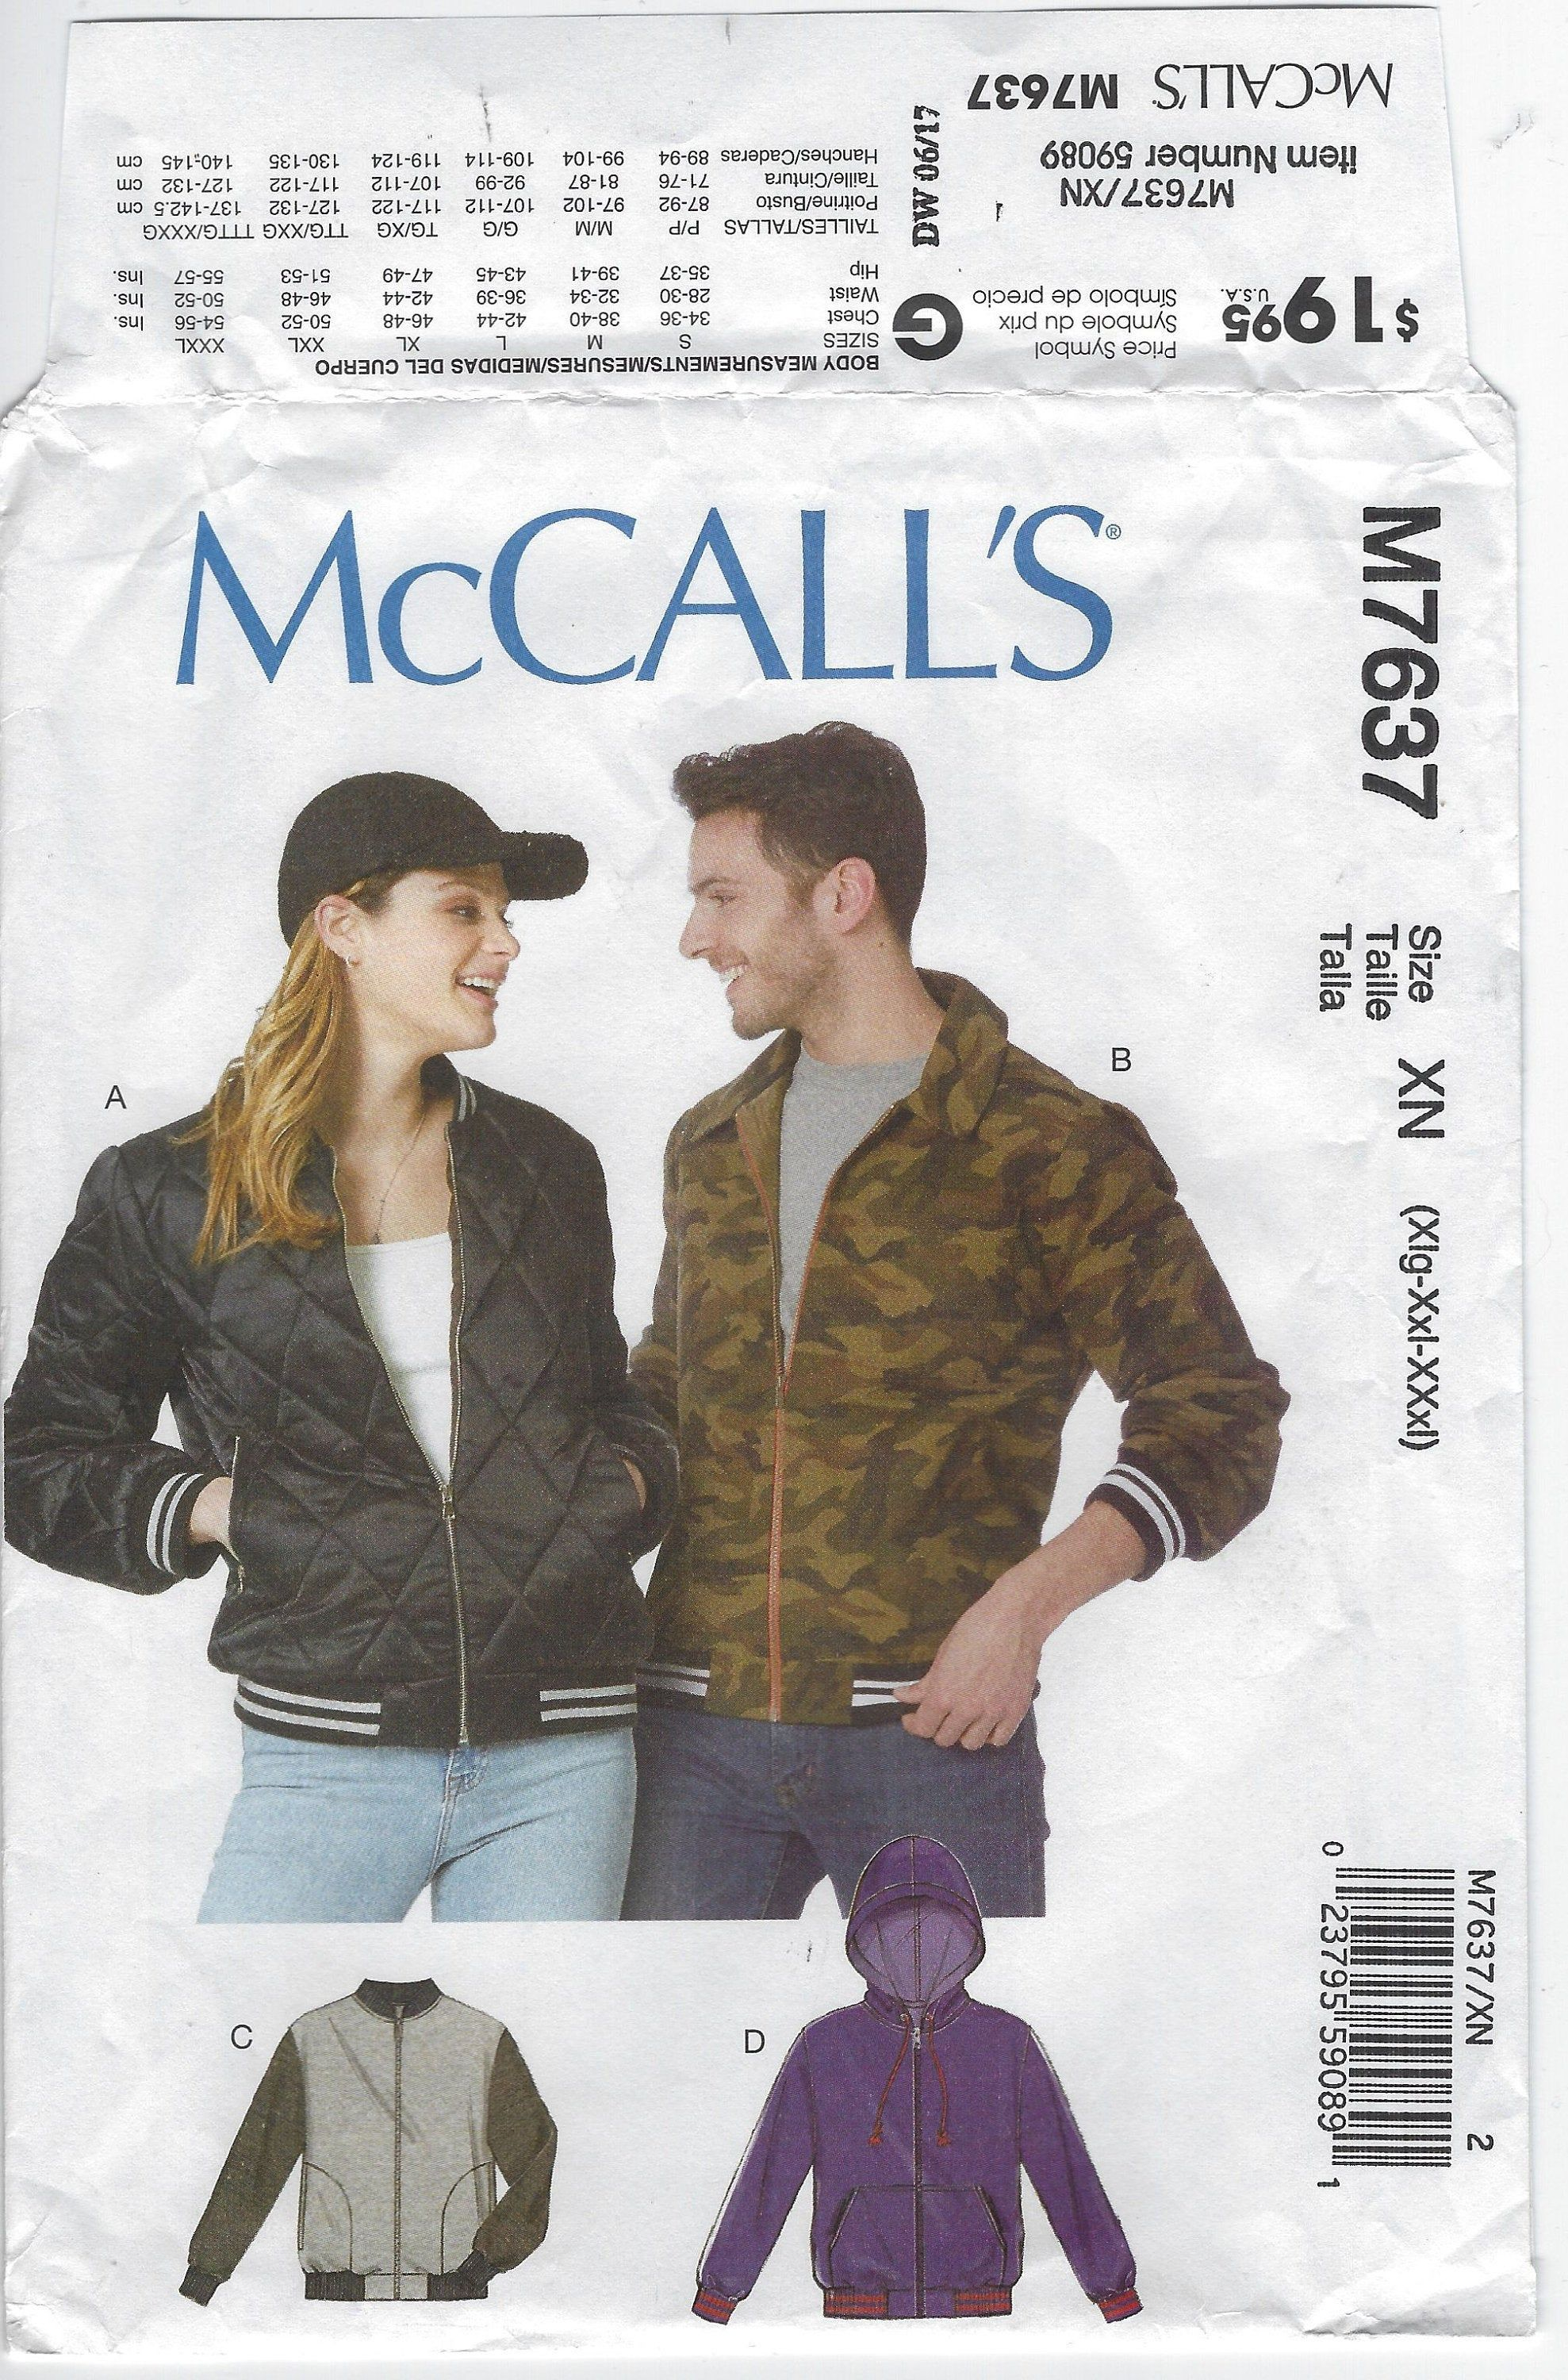 M7637 Mccall S Unisex Bomber Jackets W Separating Etsy Mens Sewing Patterns Bomber Jacket Mccalls [ 3000 x 1977 Pixel ]